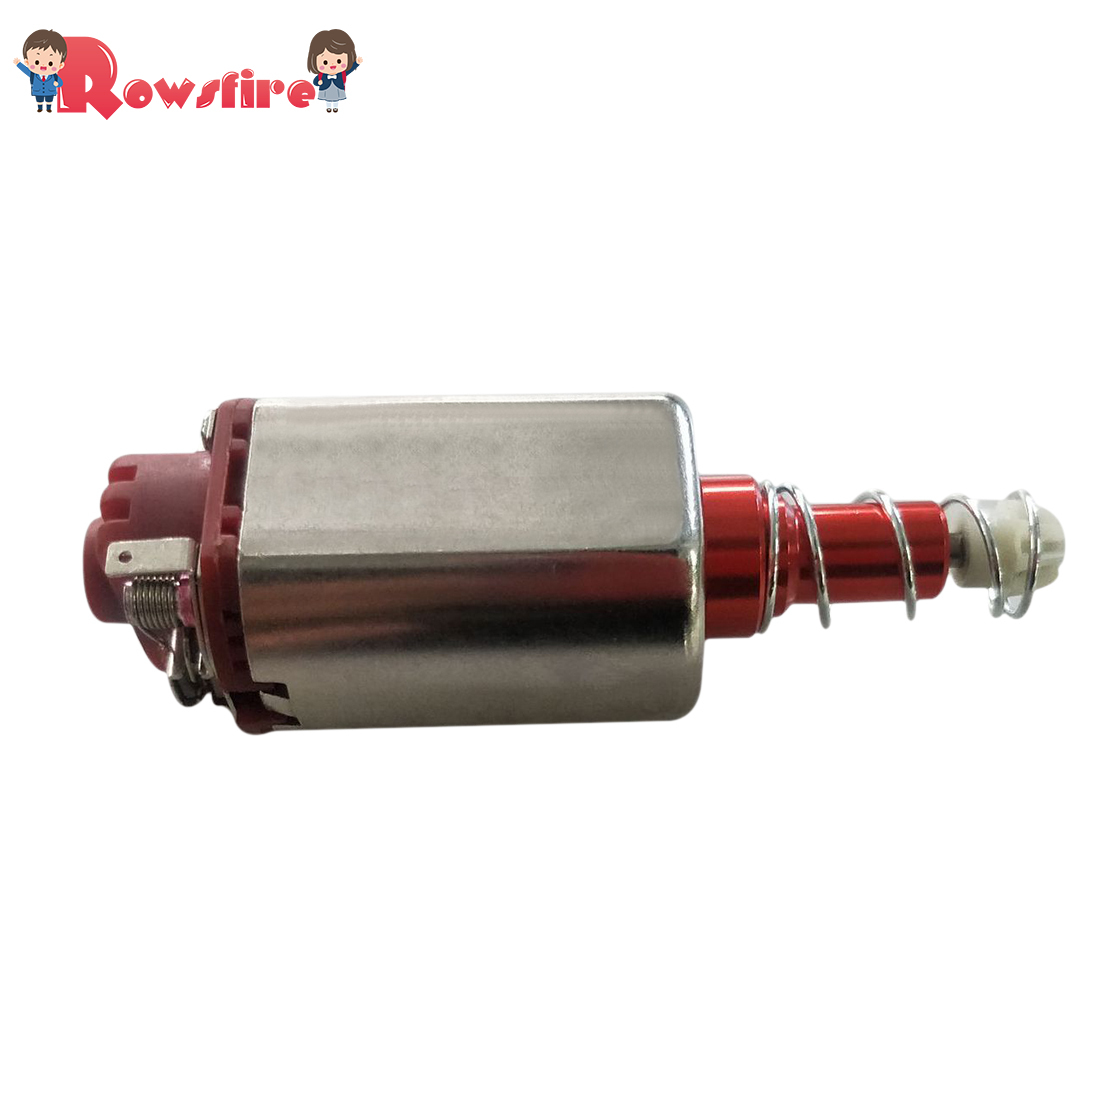 460 Long-axis Motor With Metal Location Bearing 8 Teeth Reinforced Nylon Motor Gear For JM Gen.9 M4A1 Motor